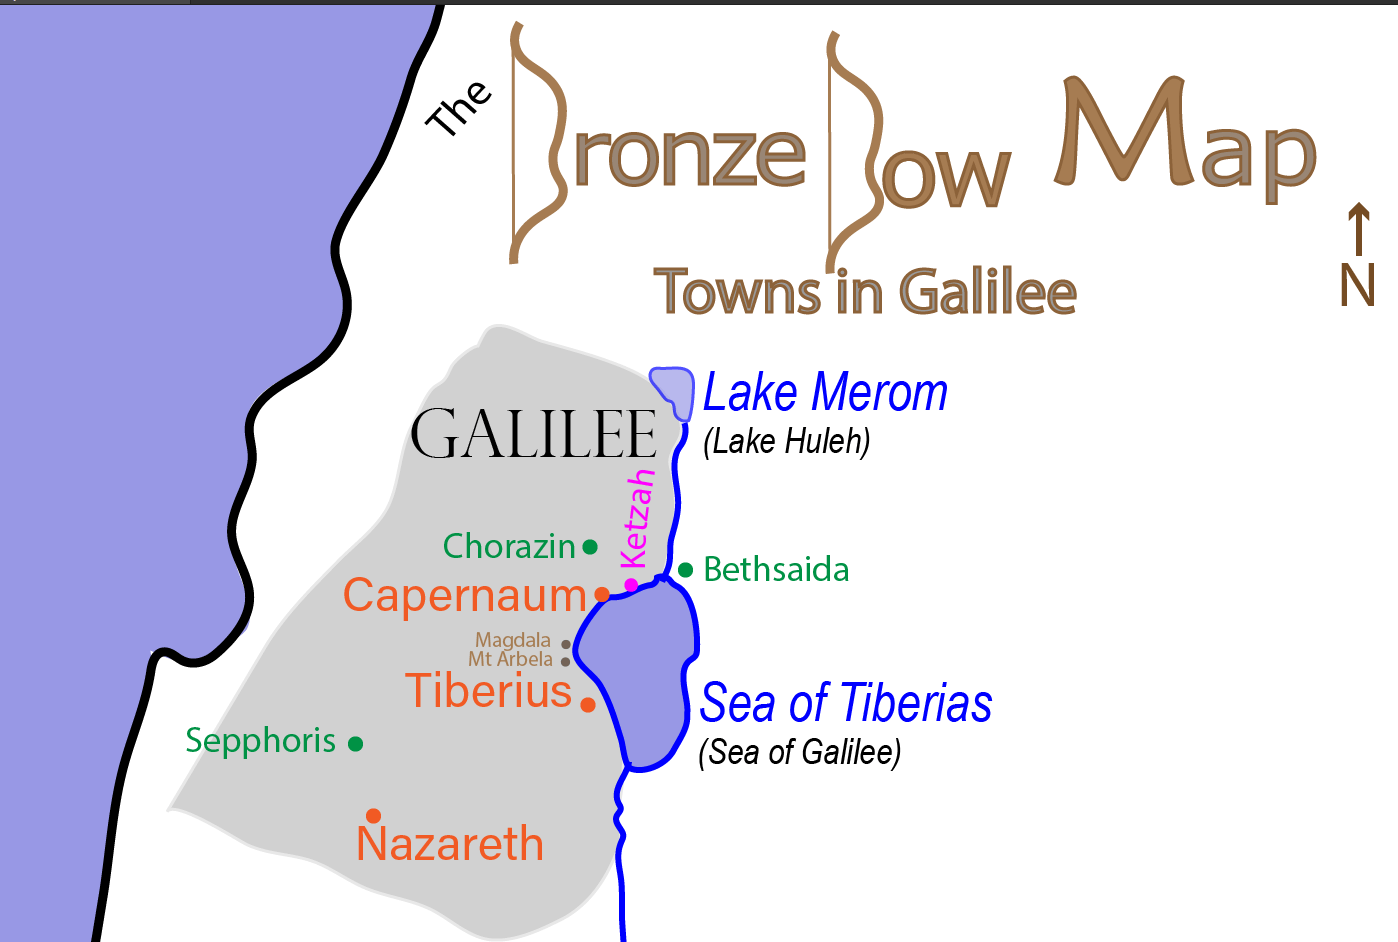 Bronze Bow Map of Major Towns